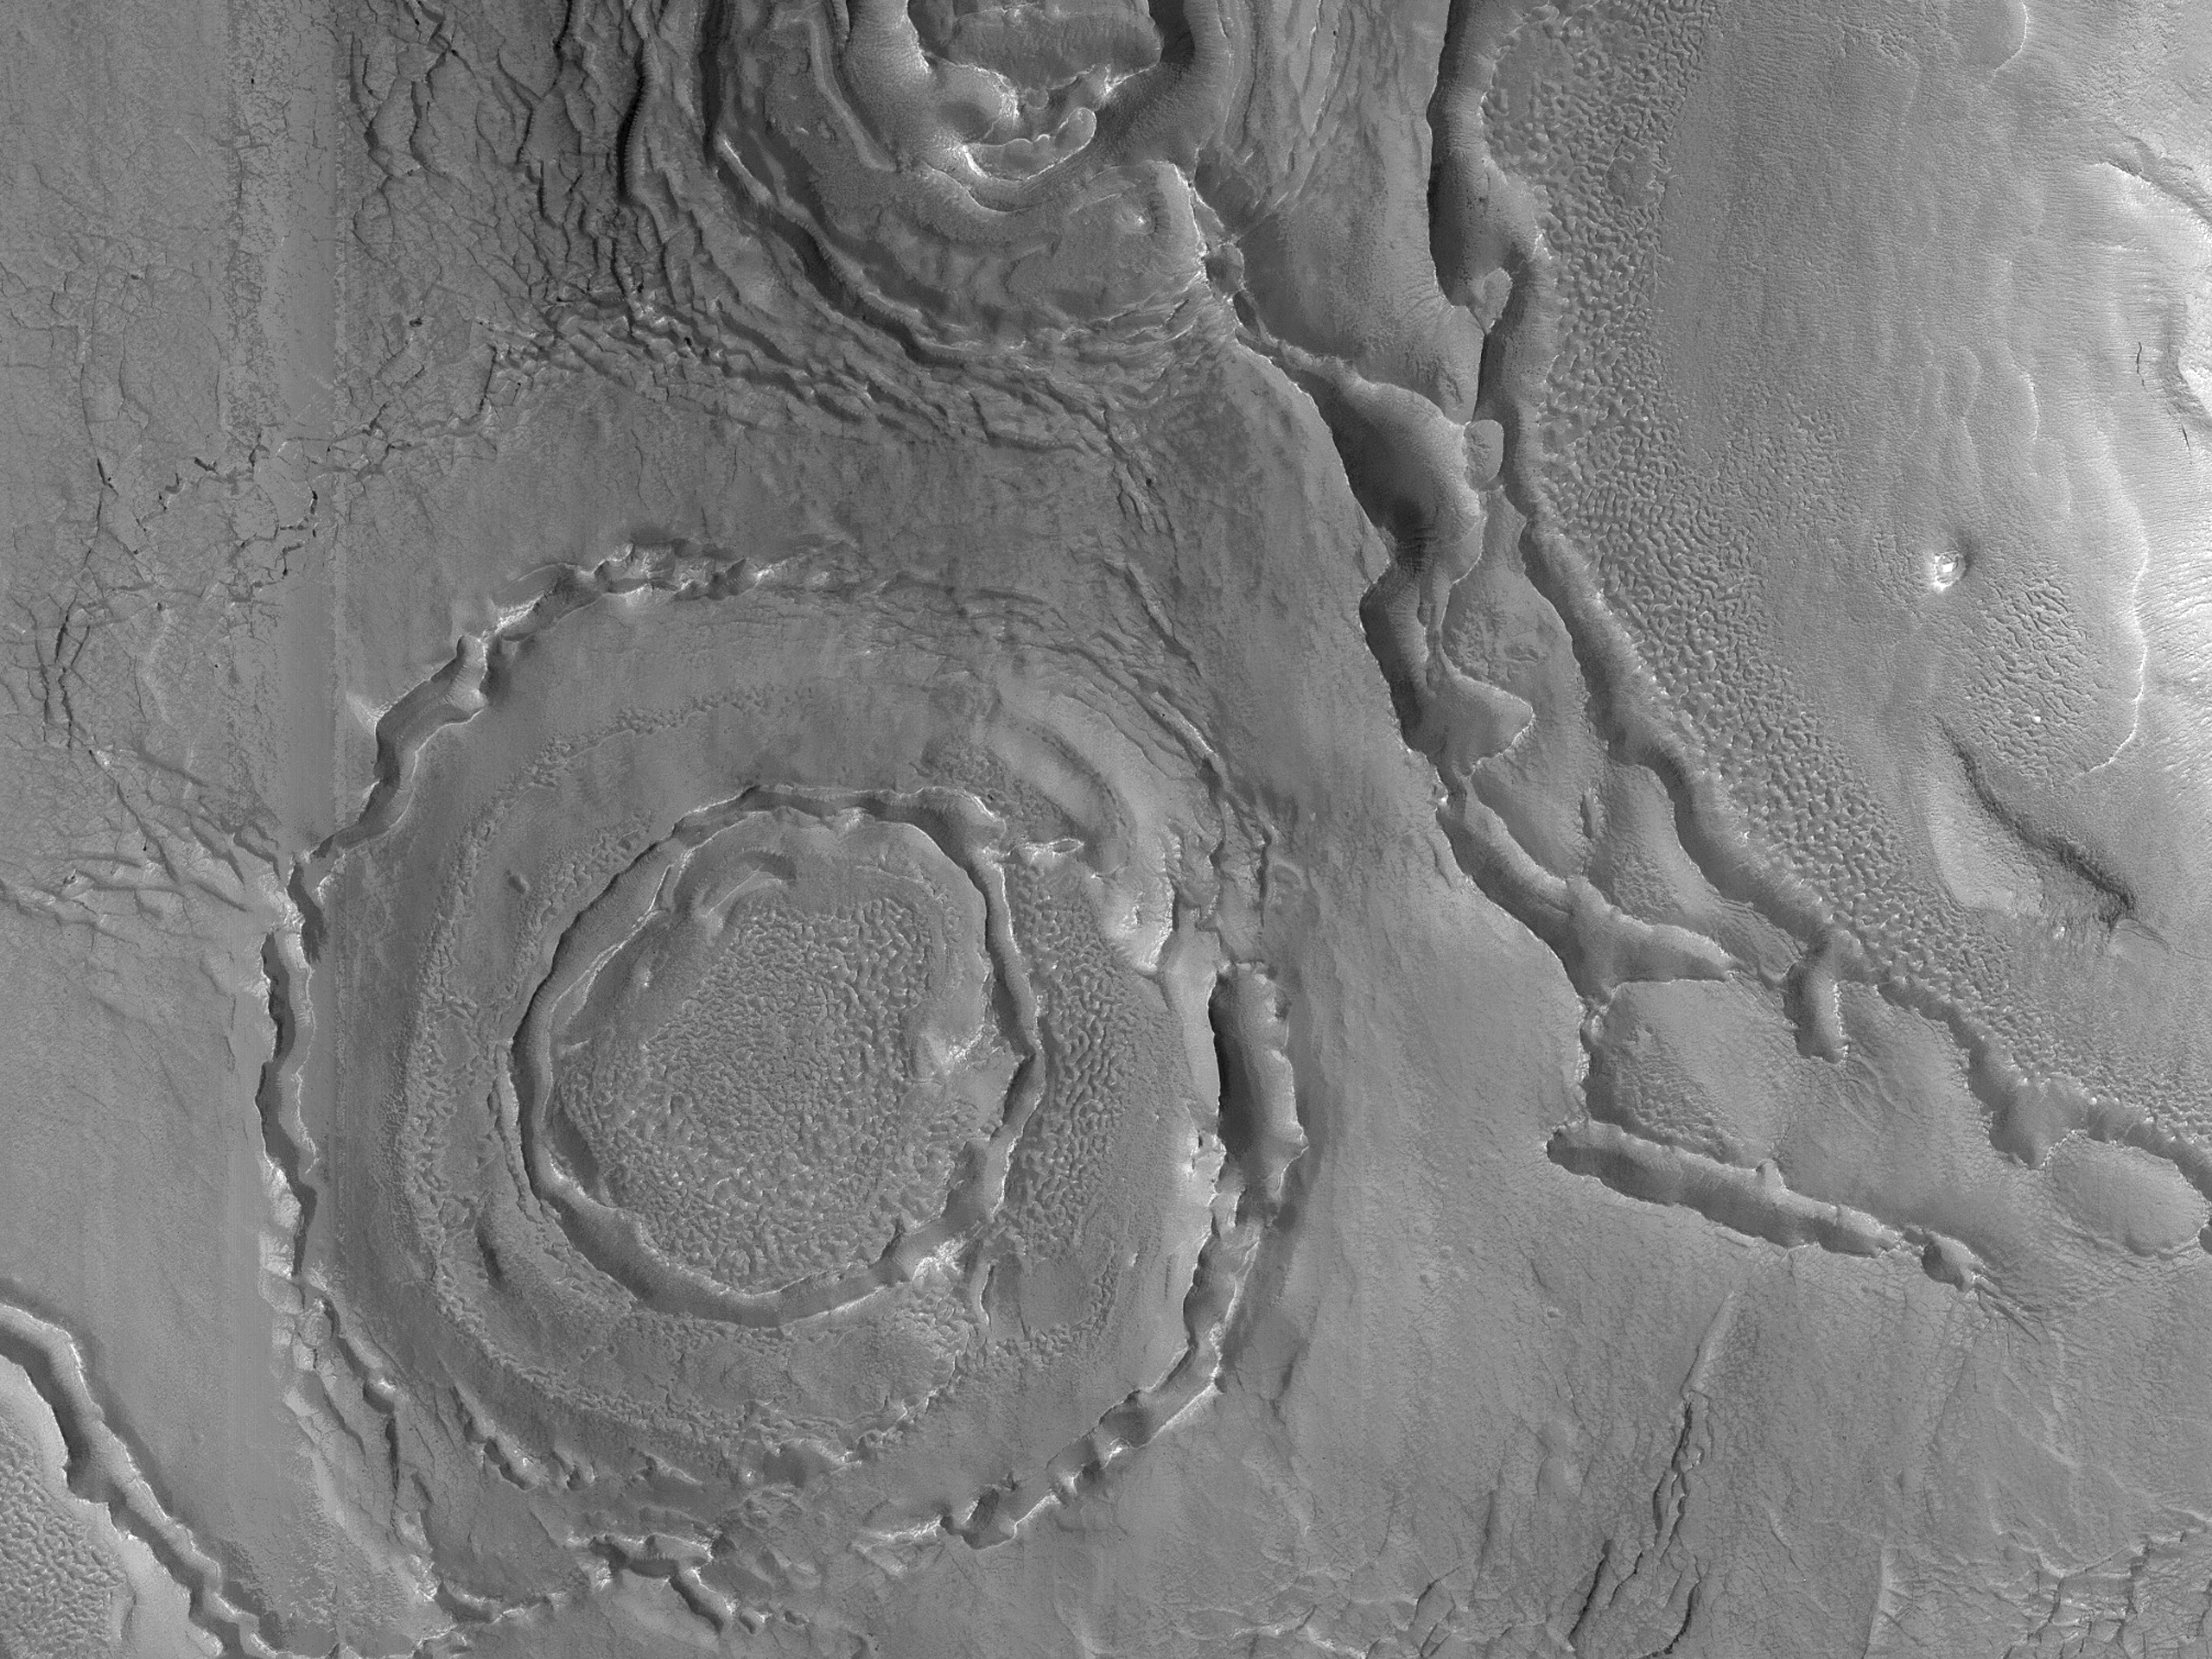 Ridges and Troughs in Circular Pattern in Deuteronilus Mensae